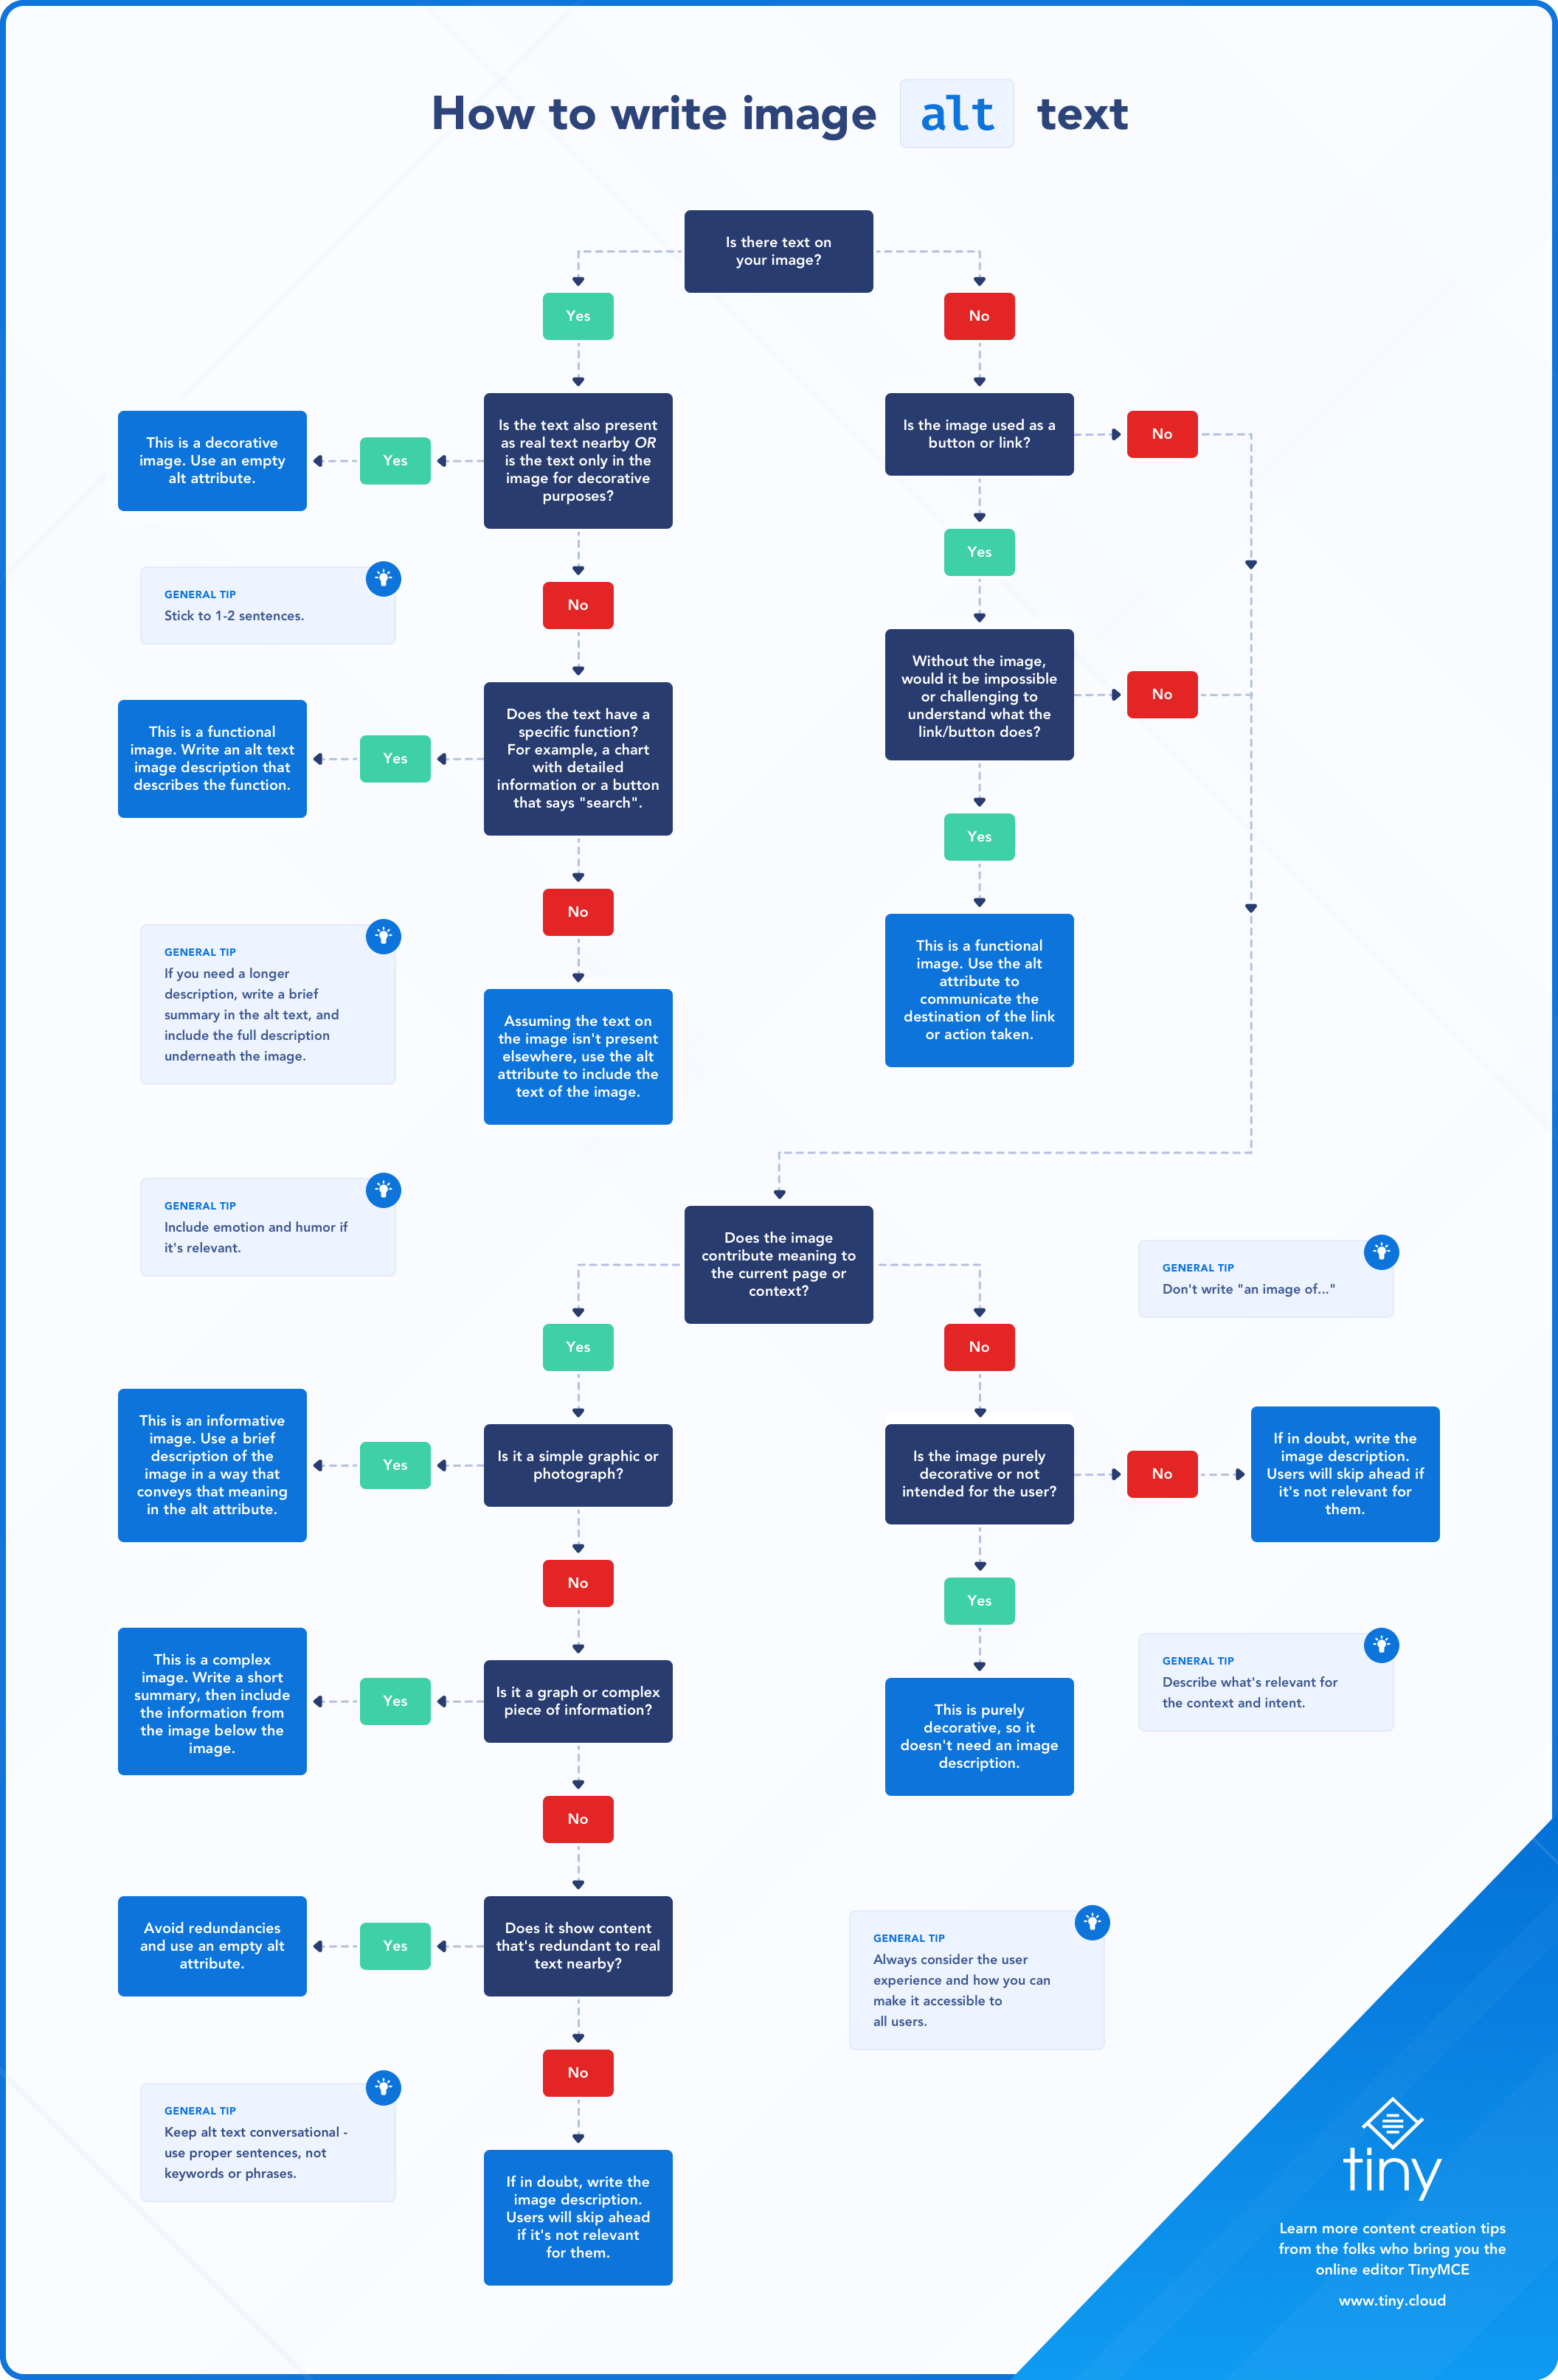 Infographic flowchart that illustrates how to write image alt text for different types of images and functions. There